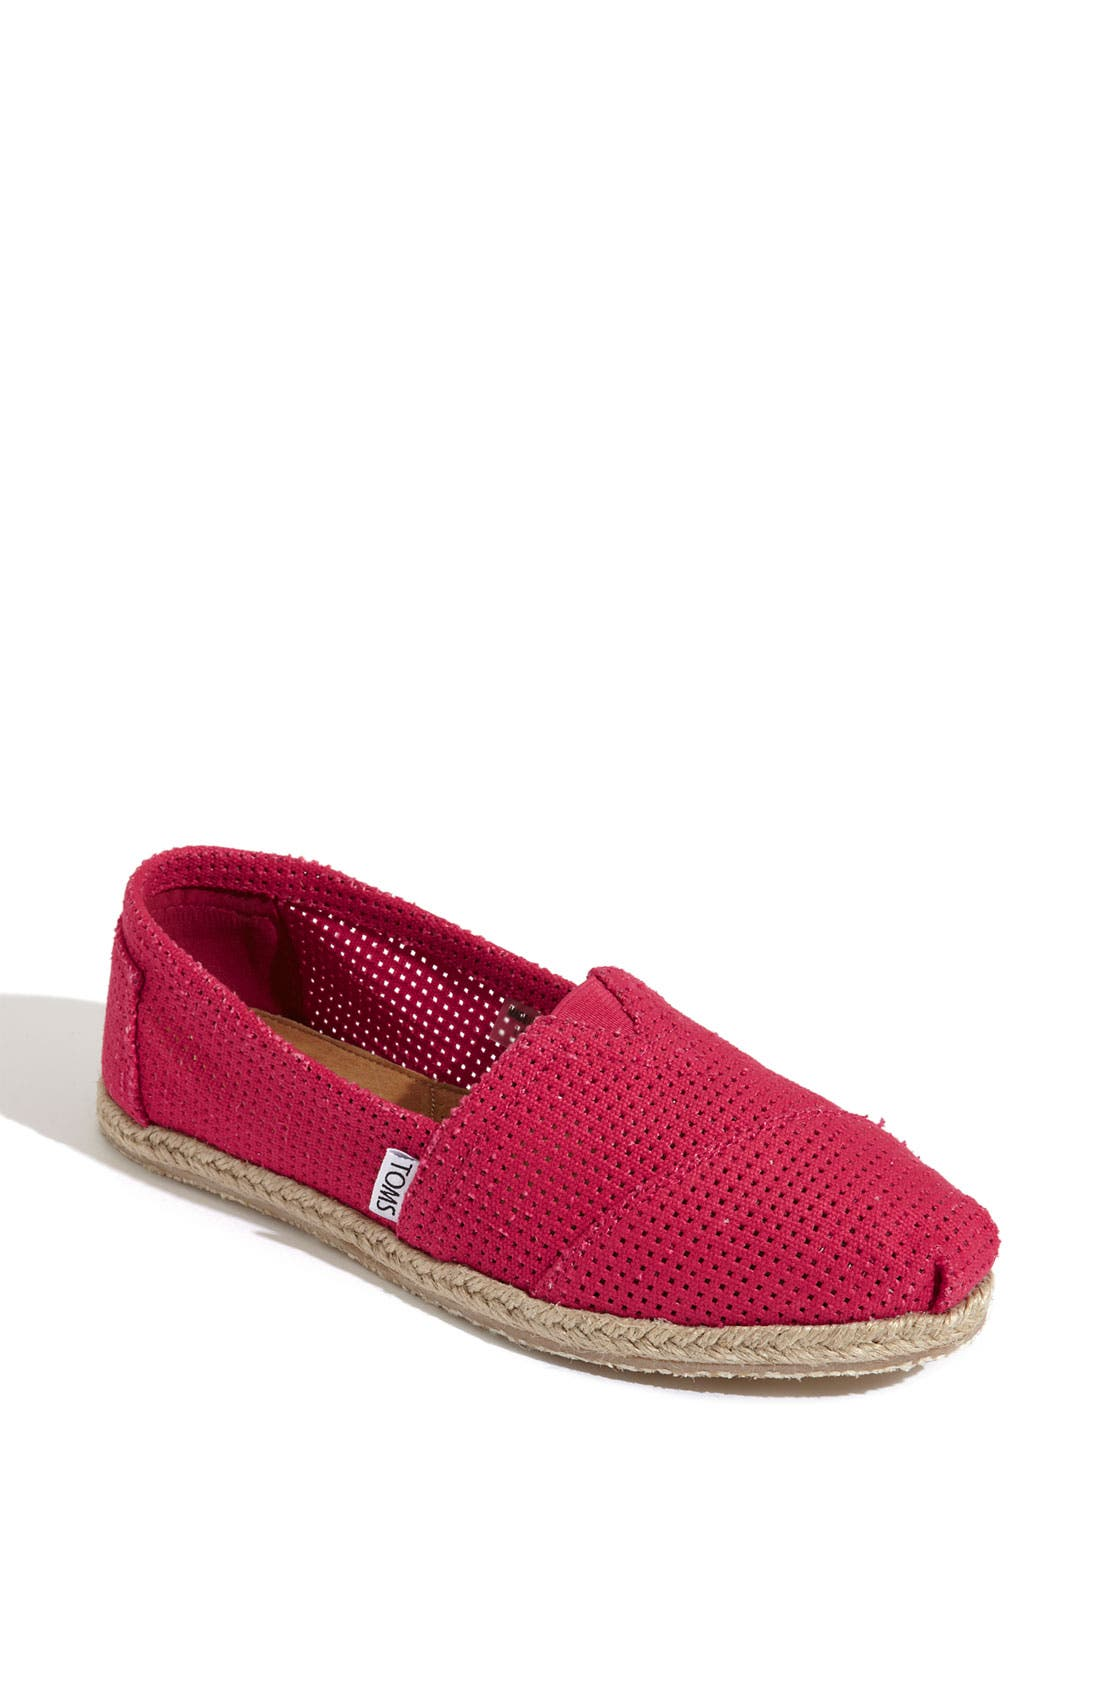 Alternate Image 1 Selected - TOMS 'Freetown - Classic' Espadrille Slip-On (Women)